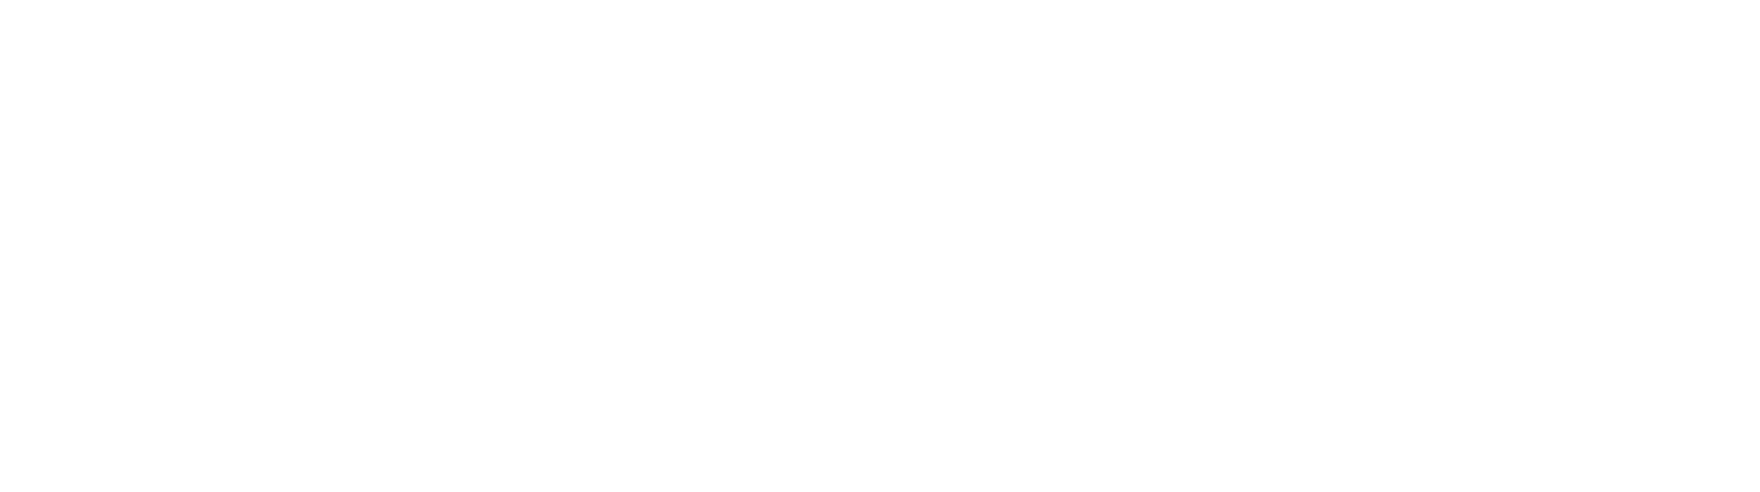 Lülsdorf Photography